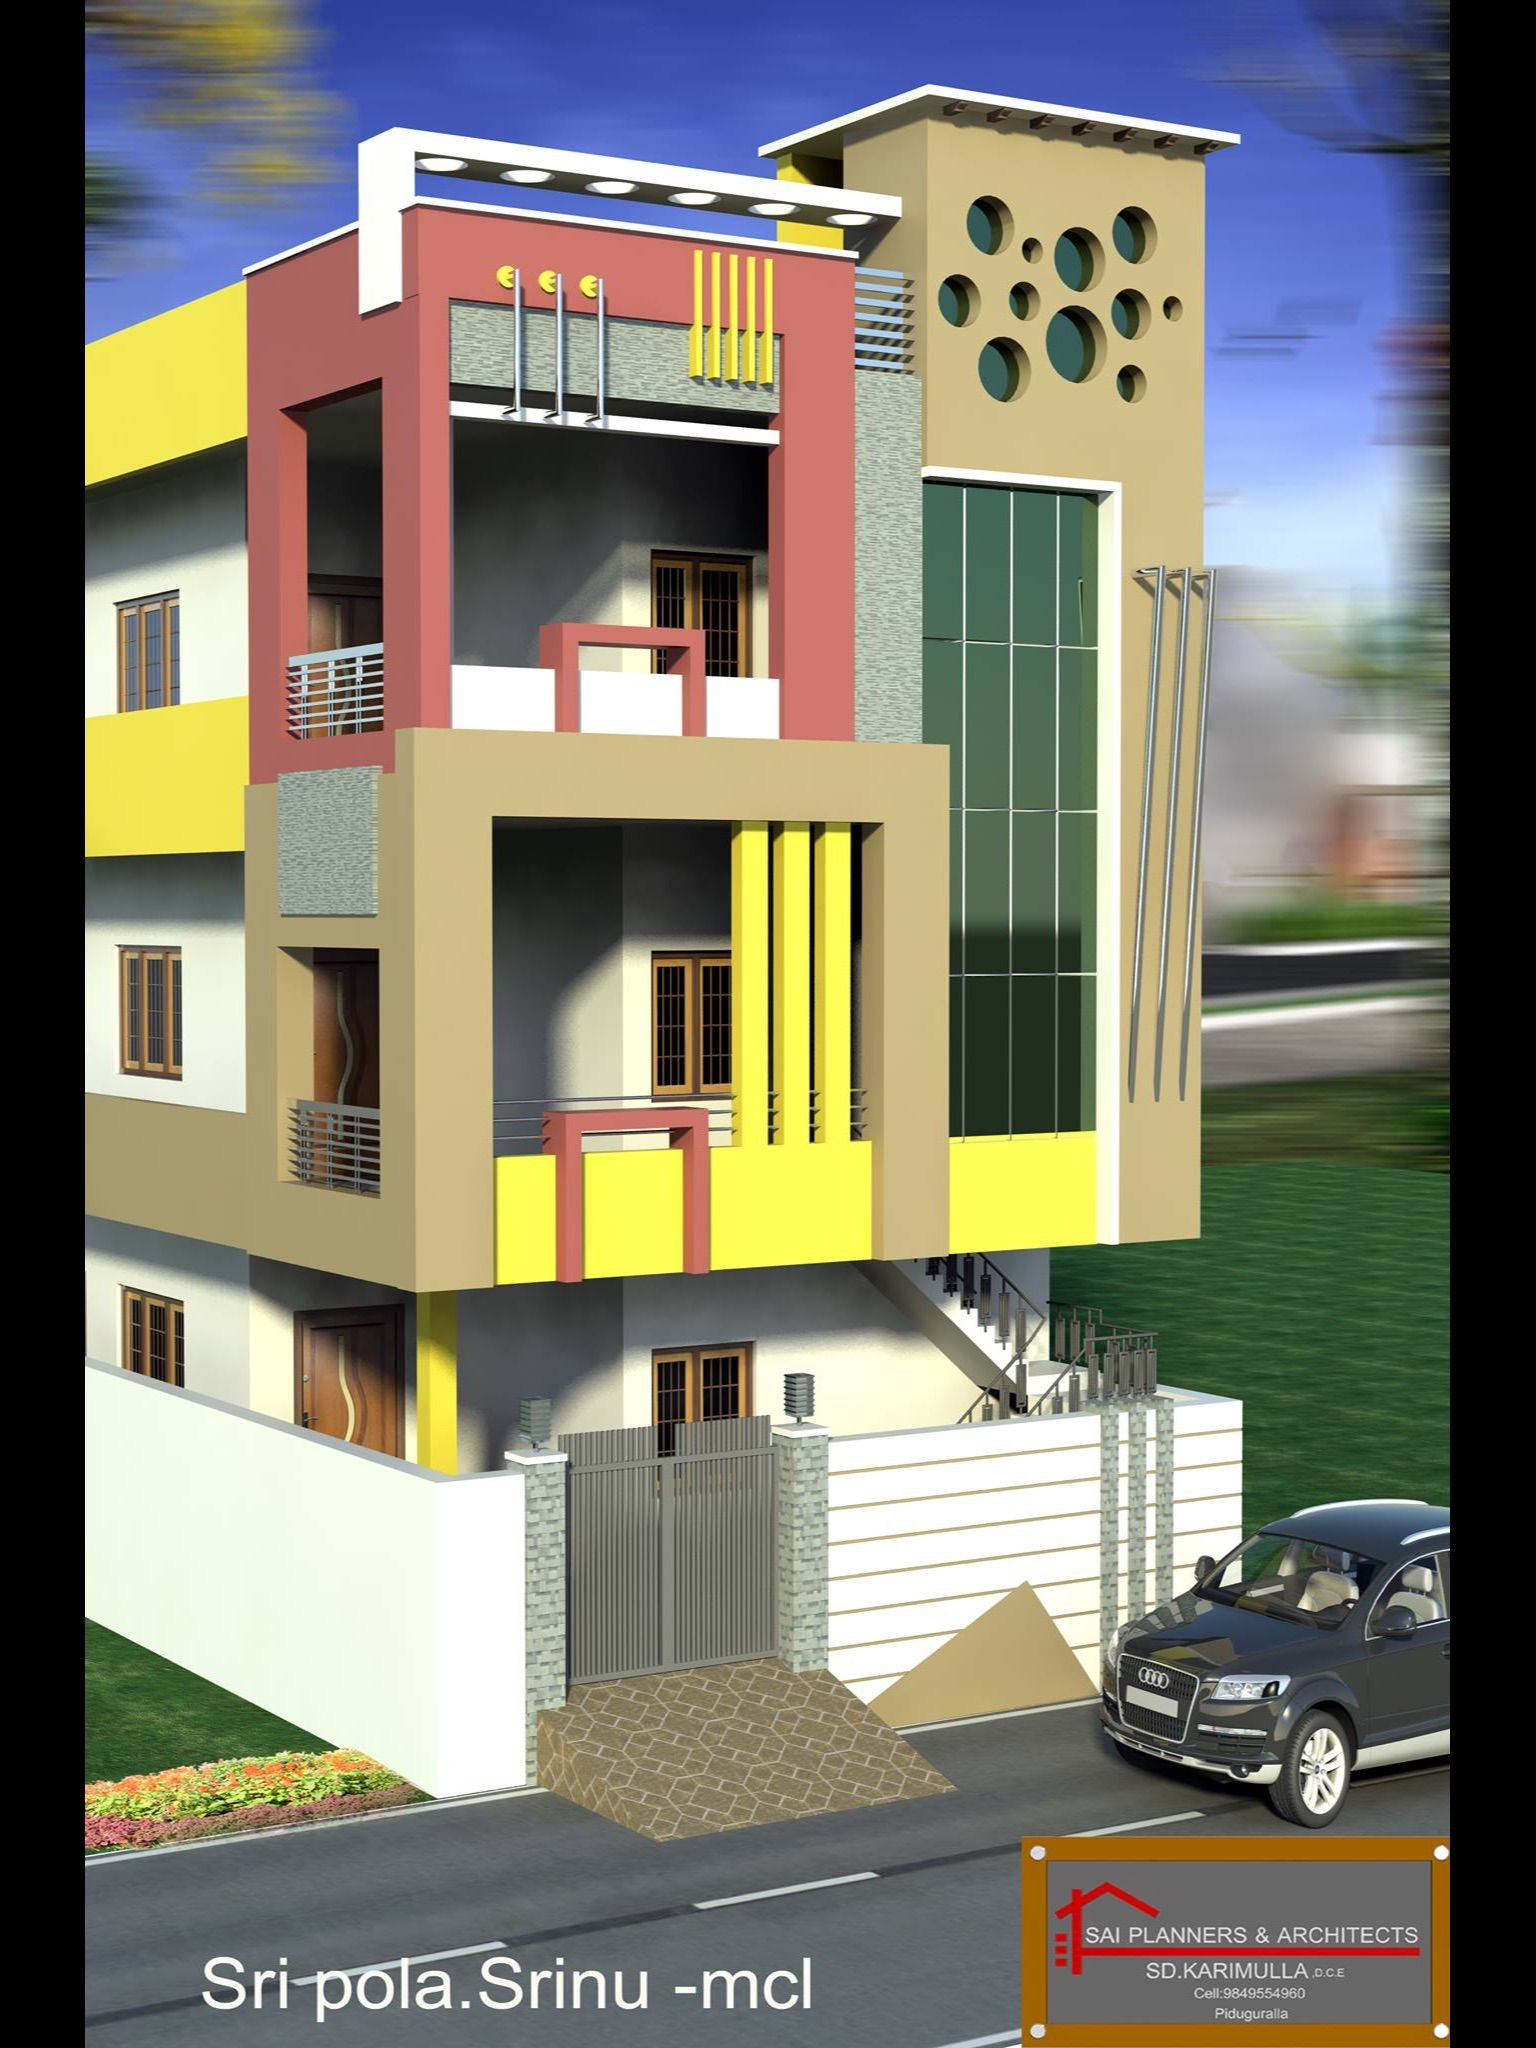 Pin by shyam kota on Photo wall | House front design ... Compound House Plan Buildings on model building plans, spiral building plans, crossbow building plans, long building plans, simple building plans, digital building plans, equipment building plans, metal building plans, concrete building plans, cross building plans, corporate building plans, common building plans, proper building plans, complex building plans, cartoon building plans, construction building plans, abstract building plans, fence building plans, complete building plans, homestead building plans,